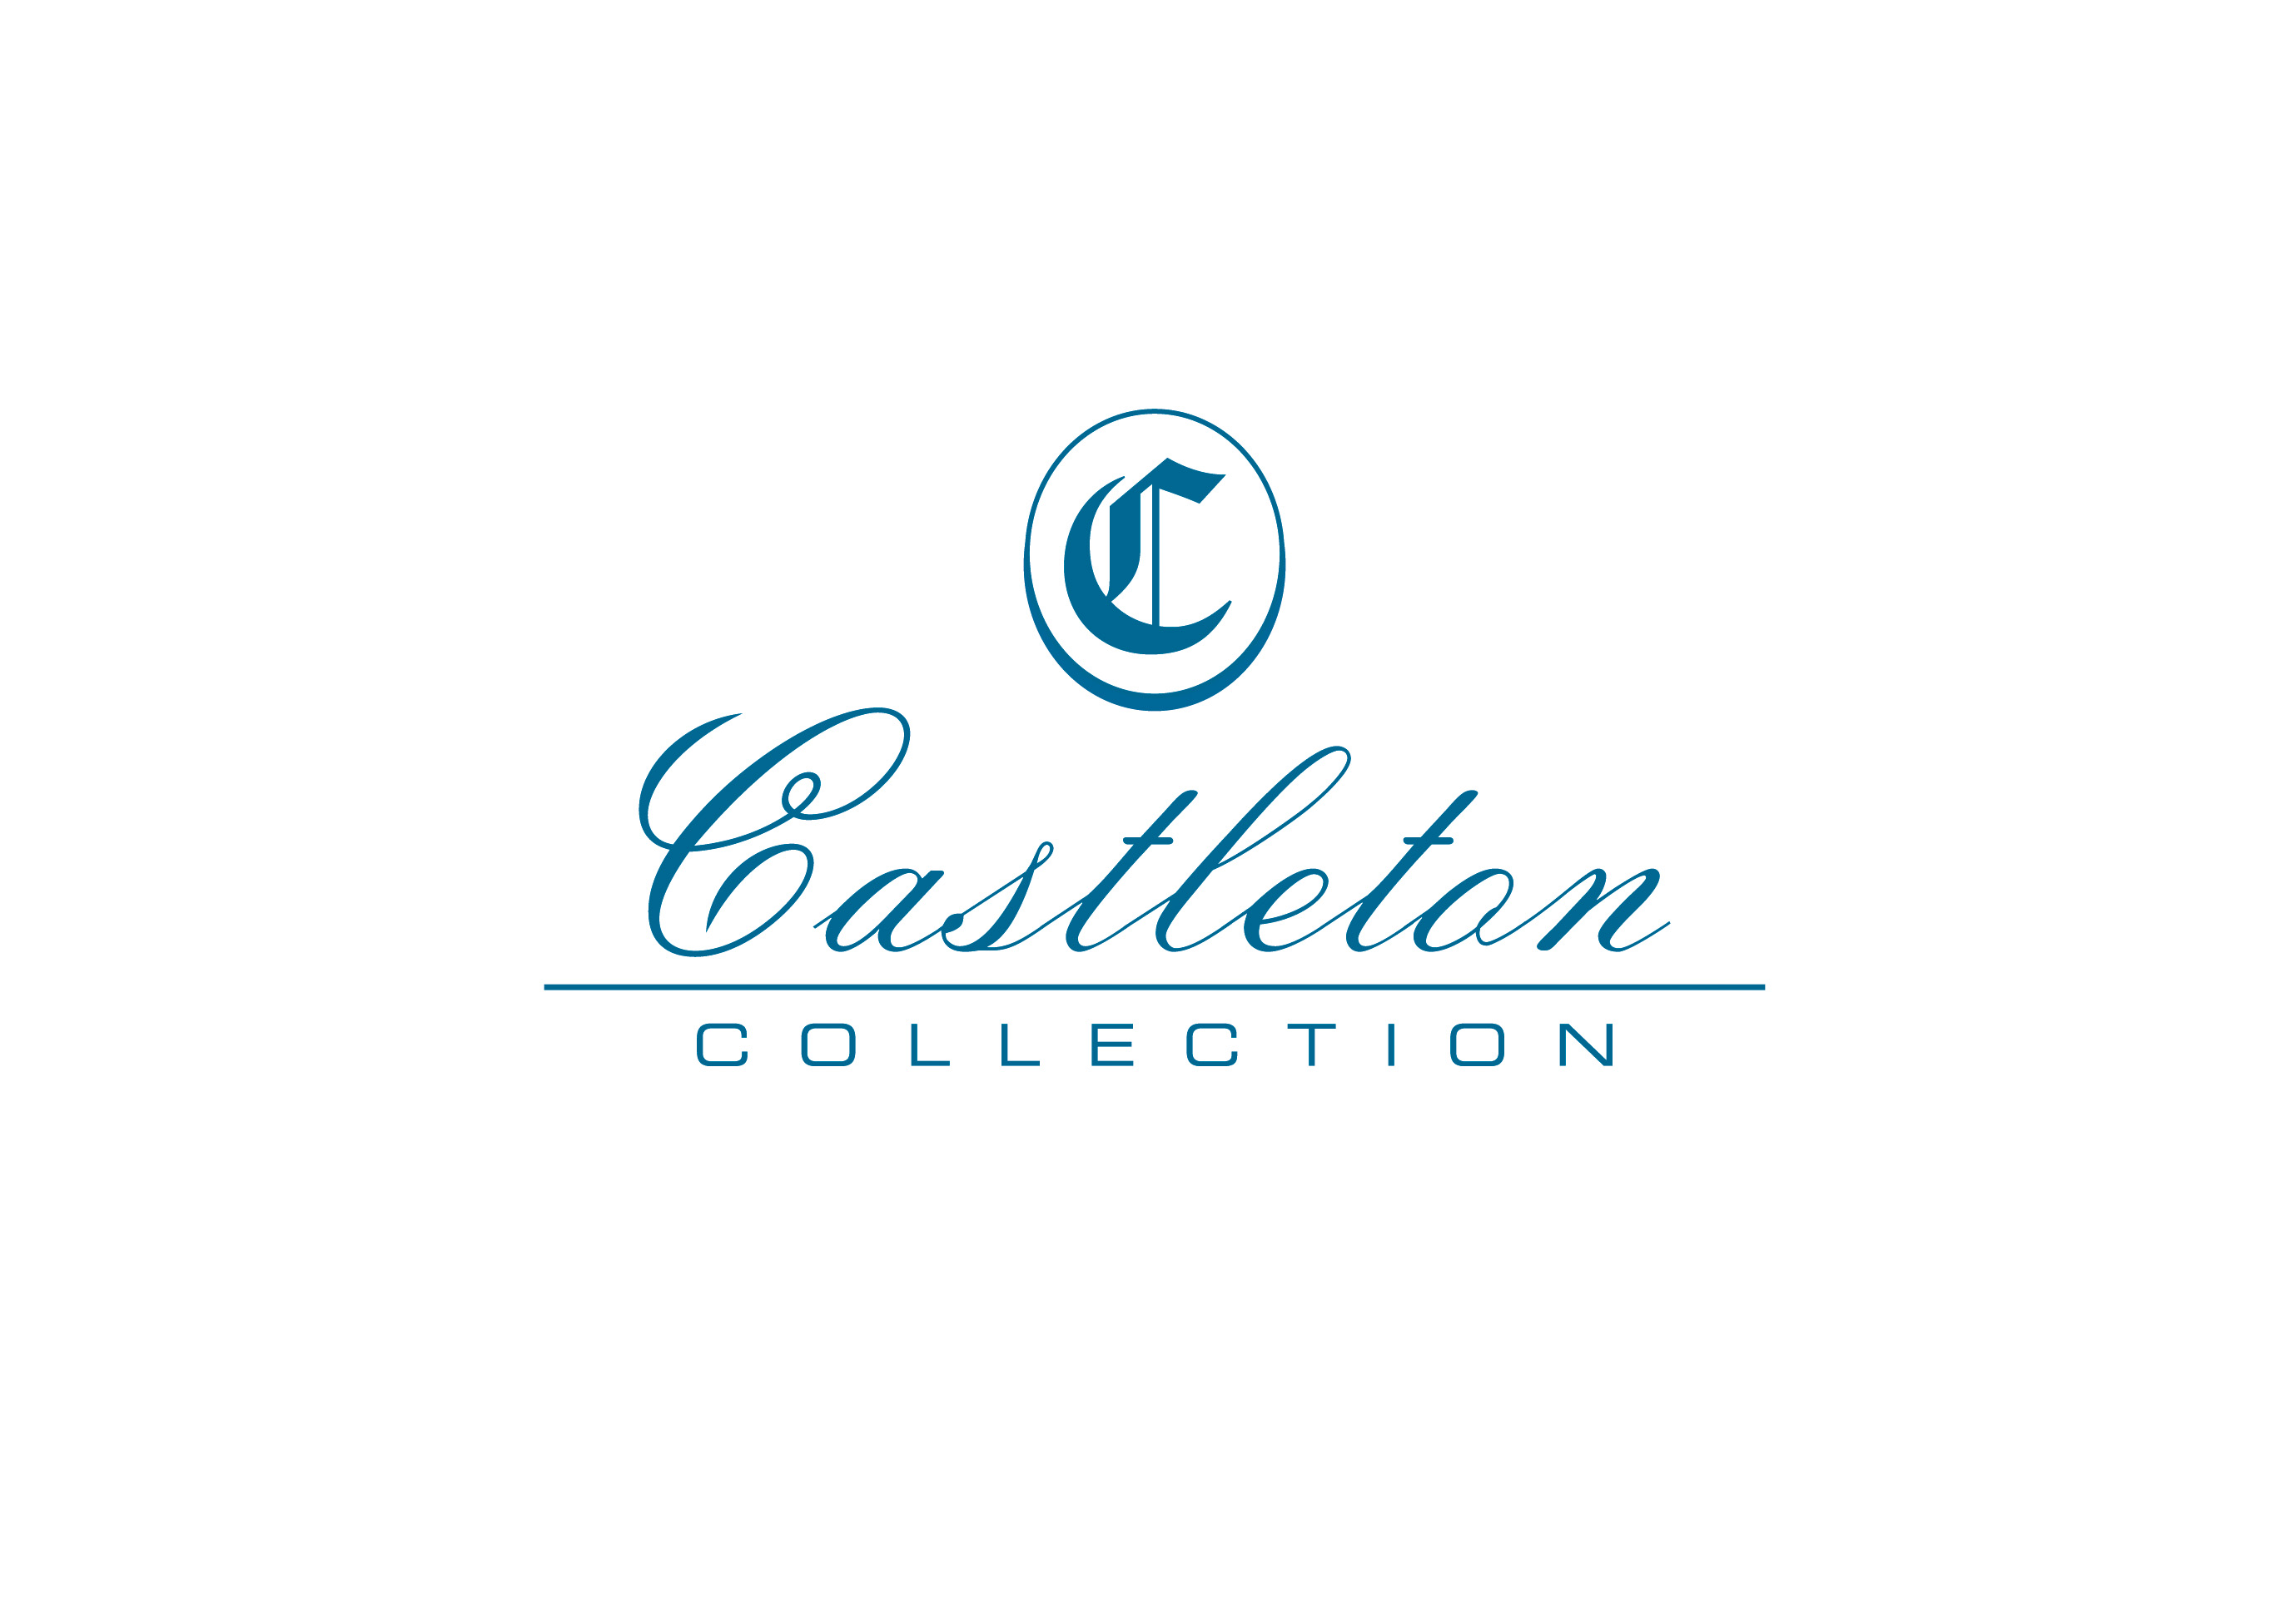 Castleton Collection